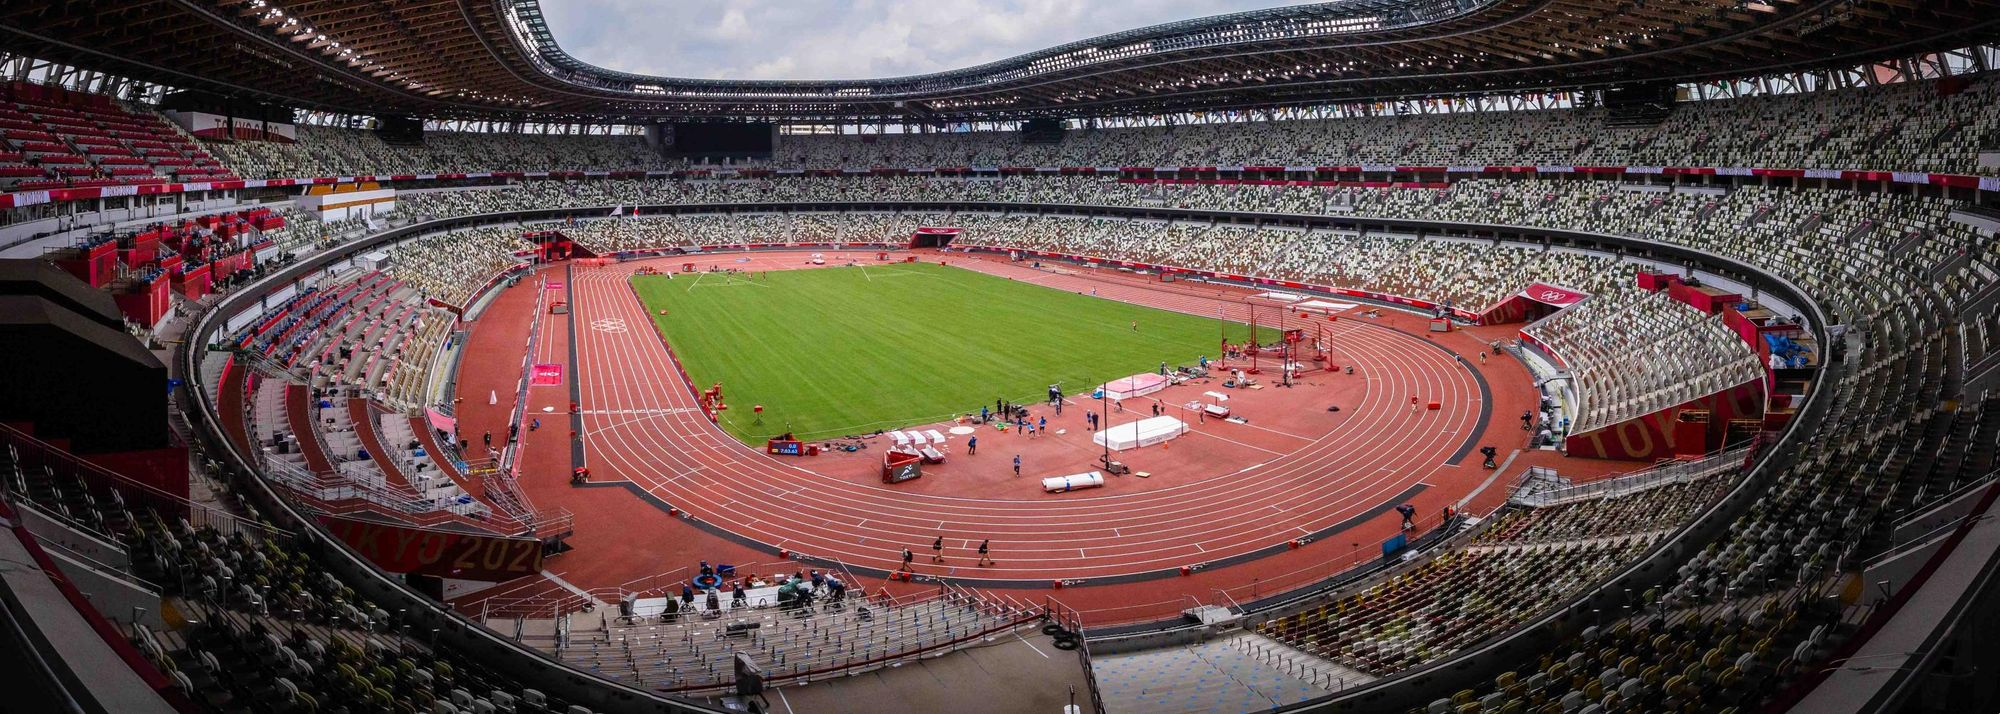 Four years, 11 months and nine days after the action in Rio came to a close, Olympic Games athletics will make its highly anticipated return at Tokyo's Olympic Stadium on Friday (28).